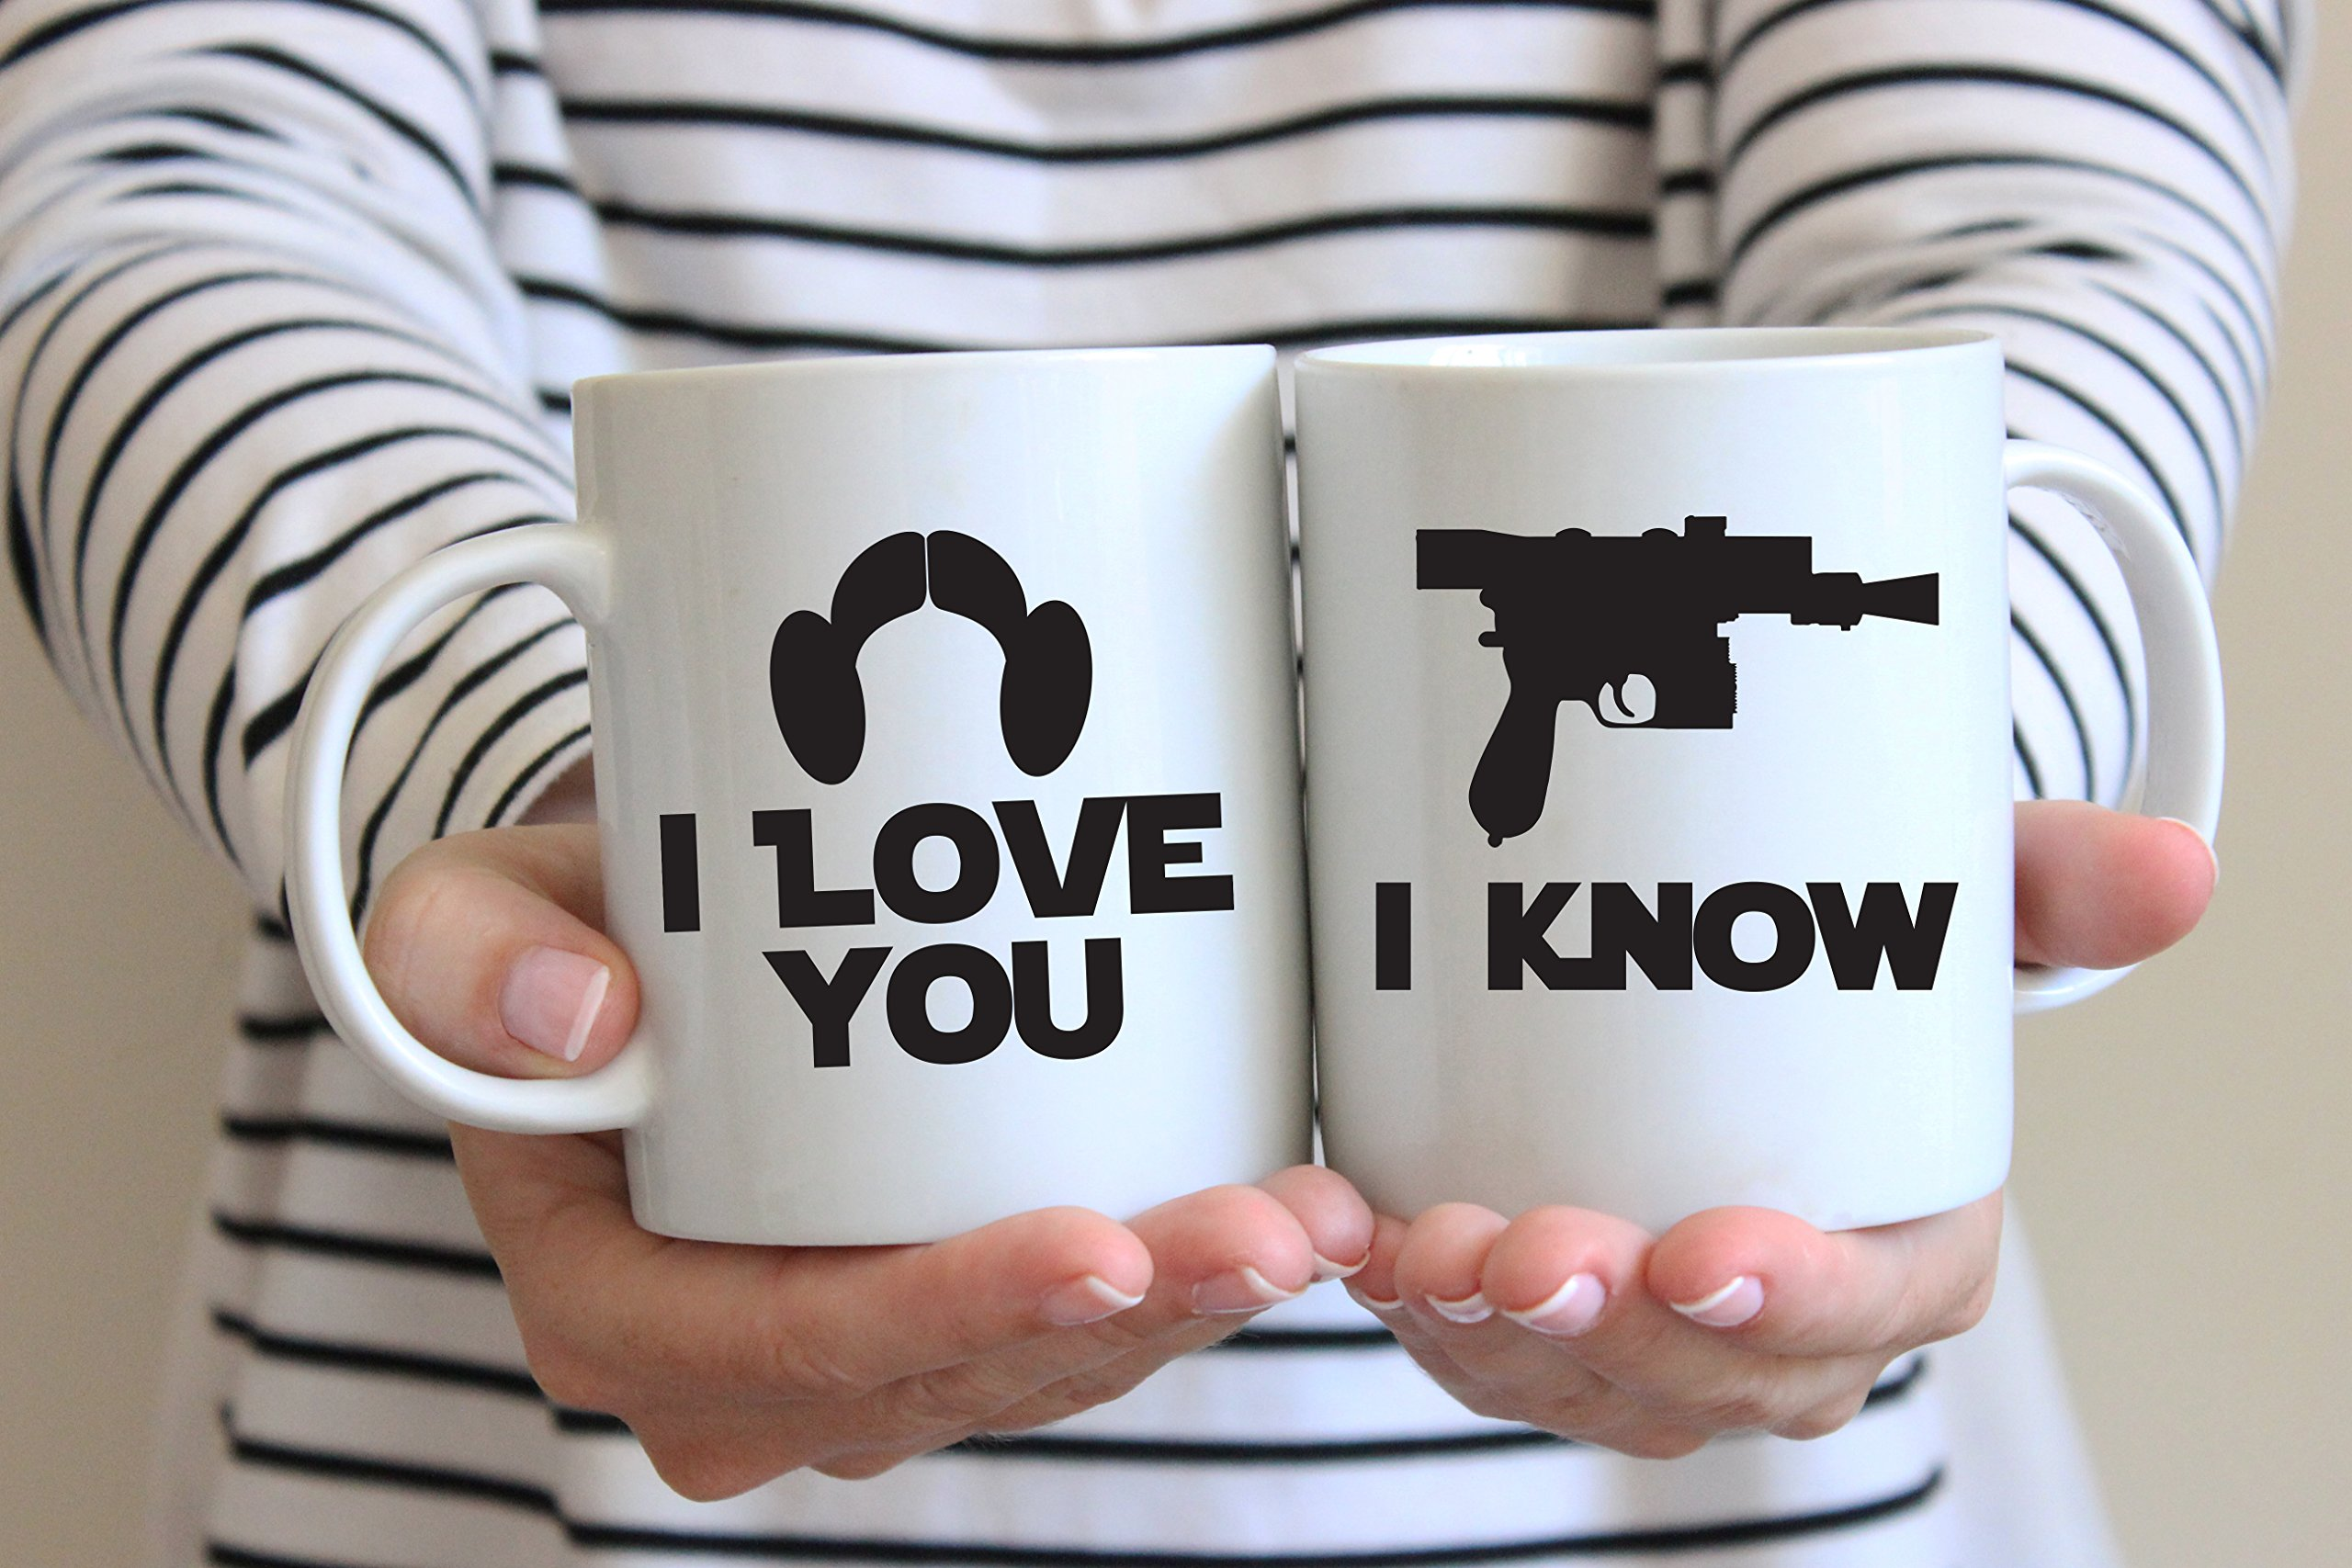 Star Wars Inspired I Love You, I Know Coffee Mug Set of 2 Great Gift for Fans Lovers by Bondi Boutique (Image #3)